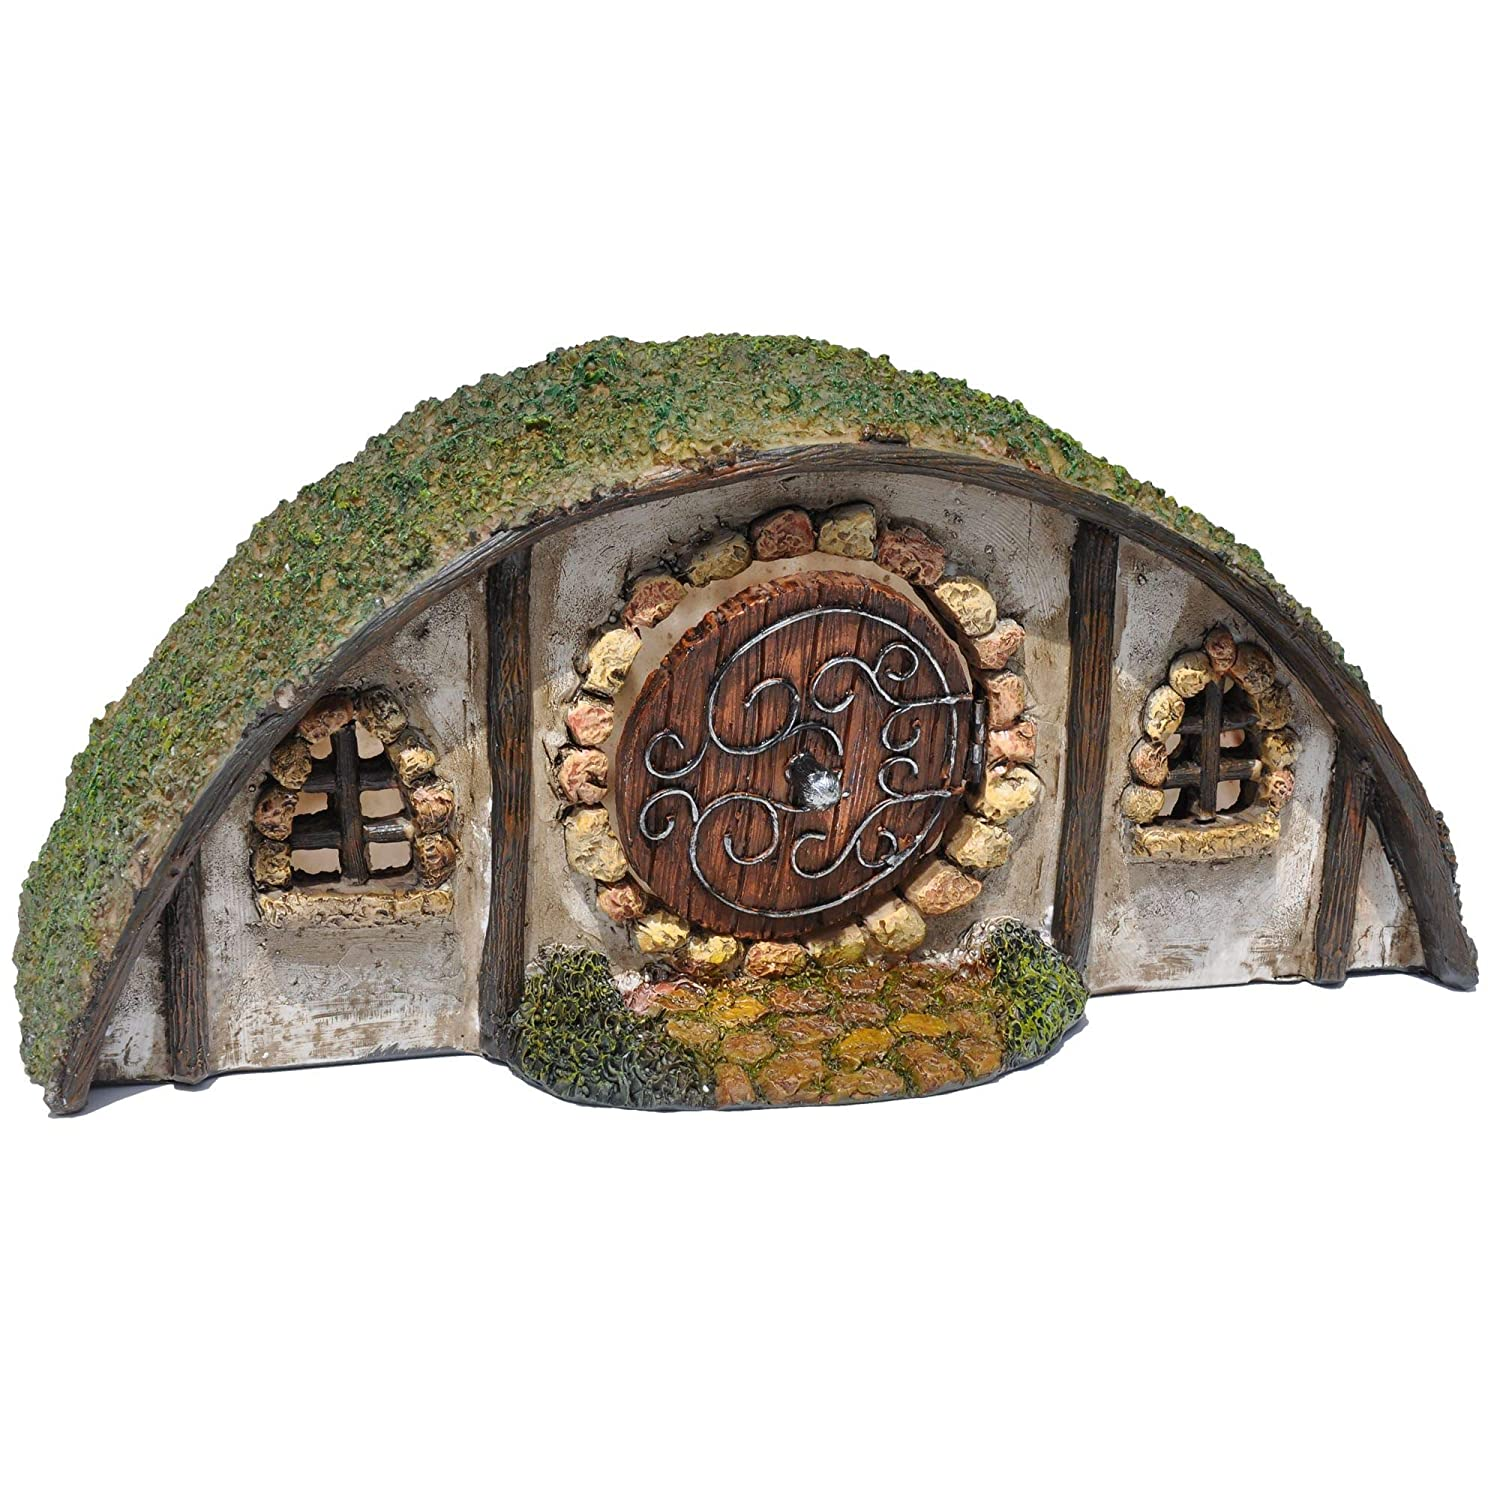 Hobbit House for Miniature Garden, Fairy Garden